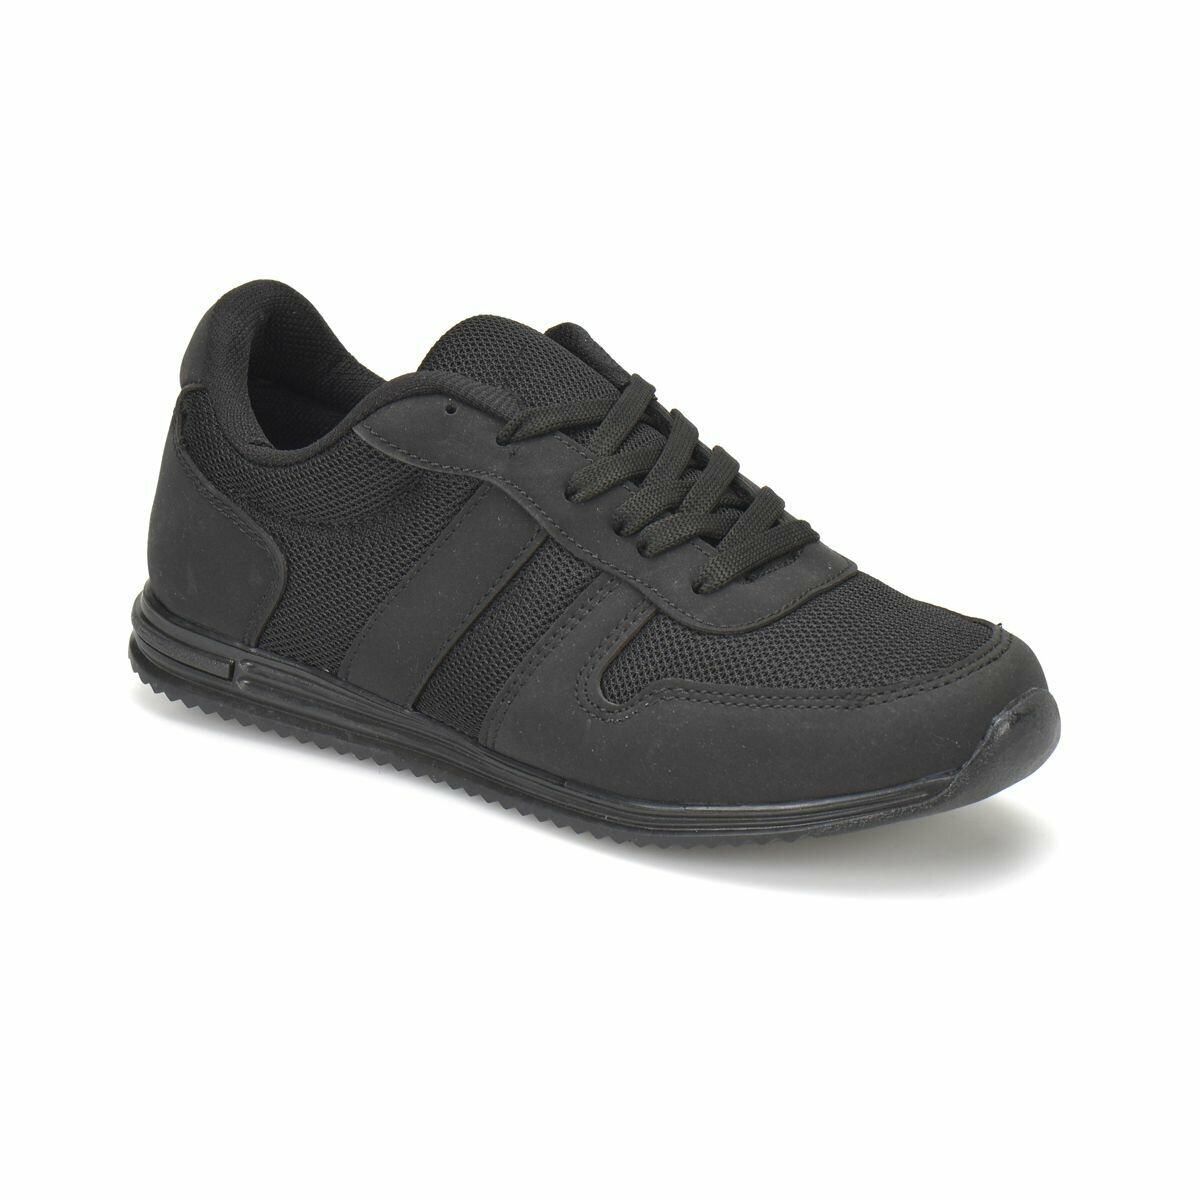 FLO BRIAN W Black Women 'S Sneaker Shoes Torex